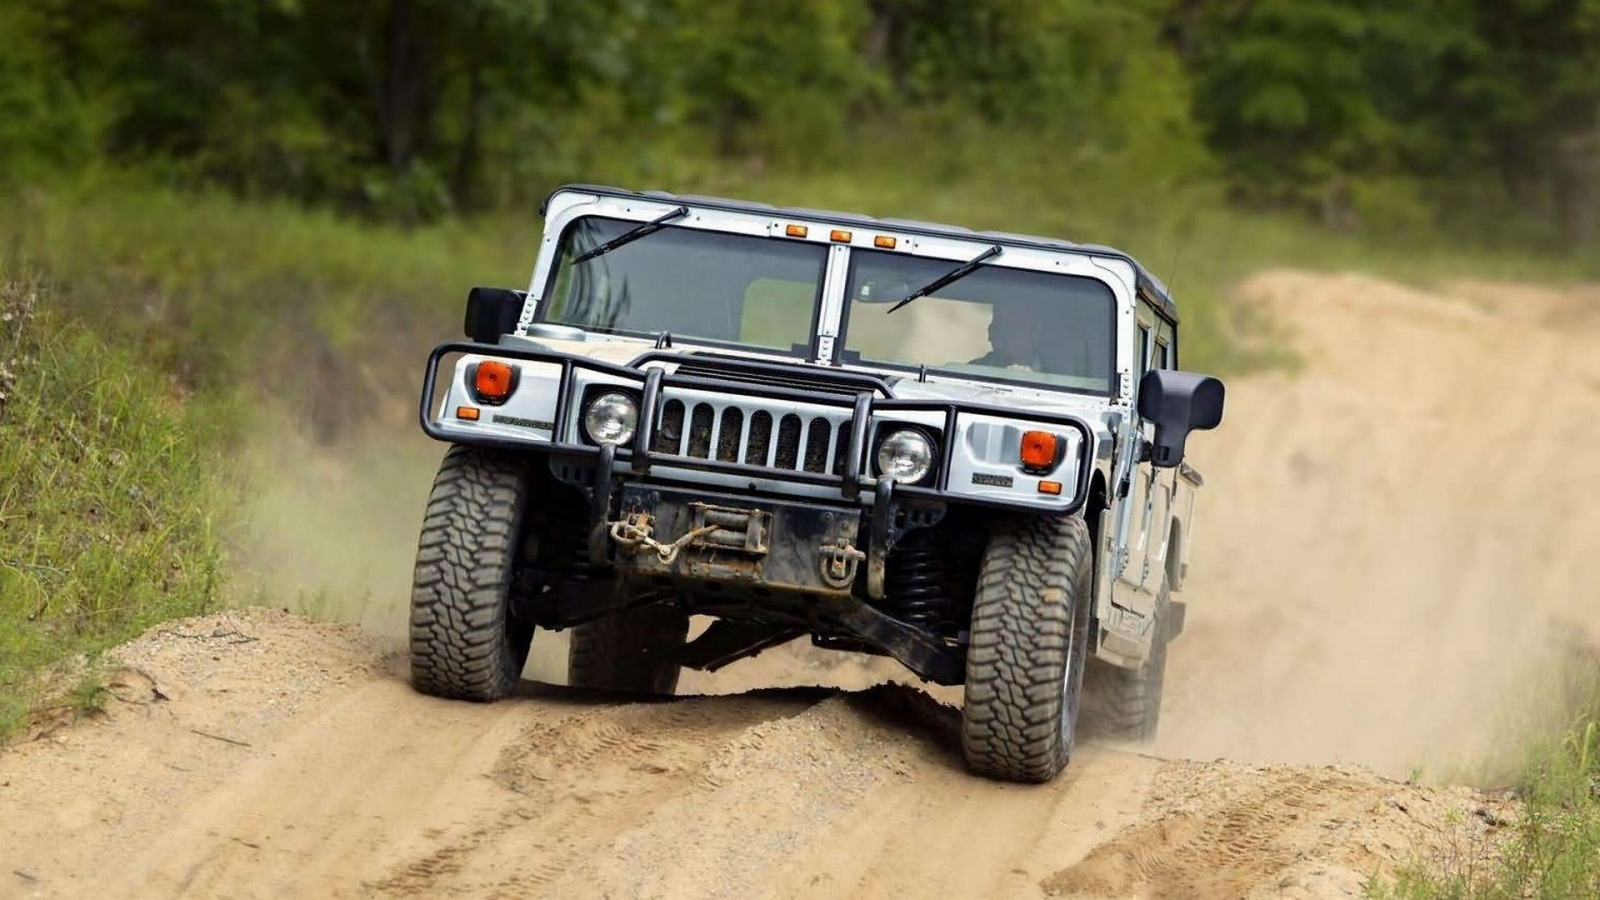 Hummer H1 2002 07 Wallpapers HD